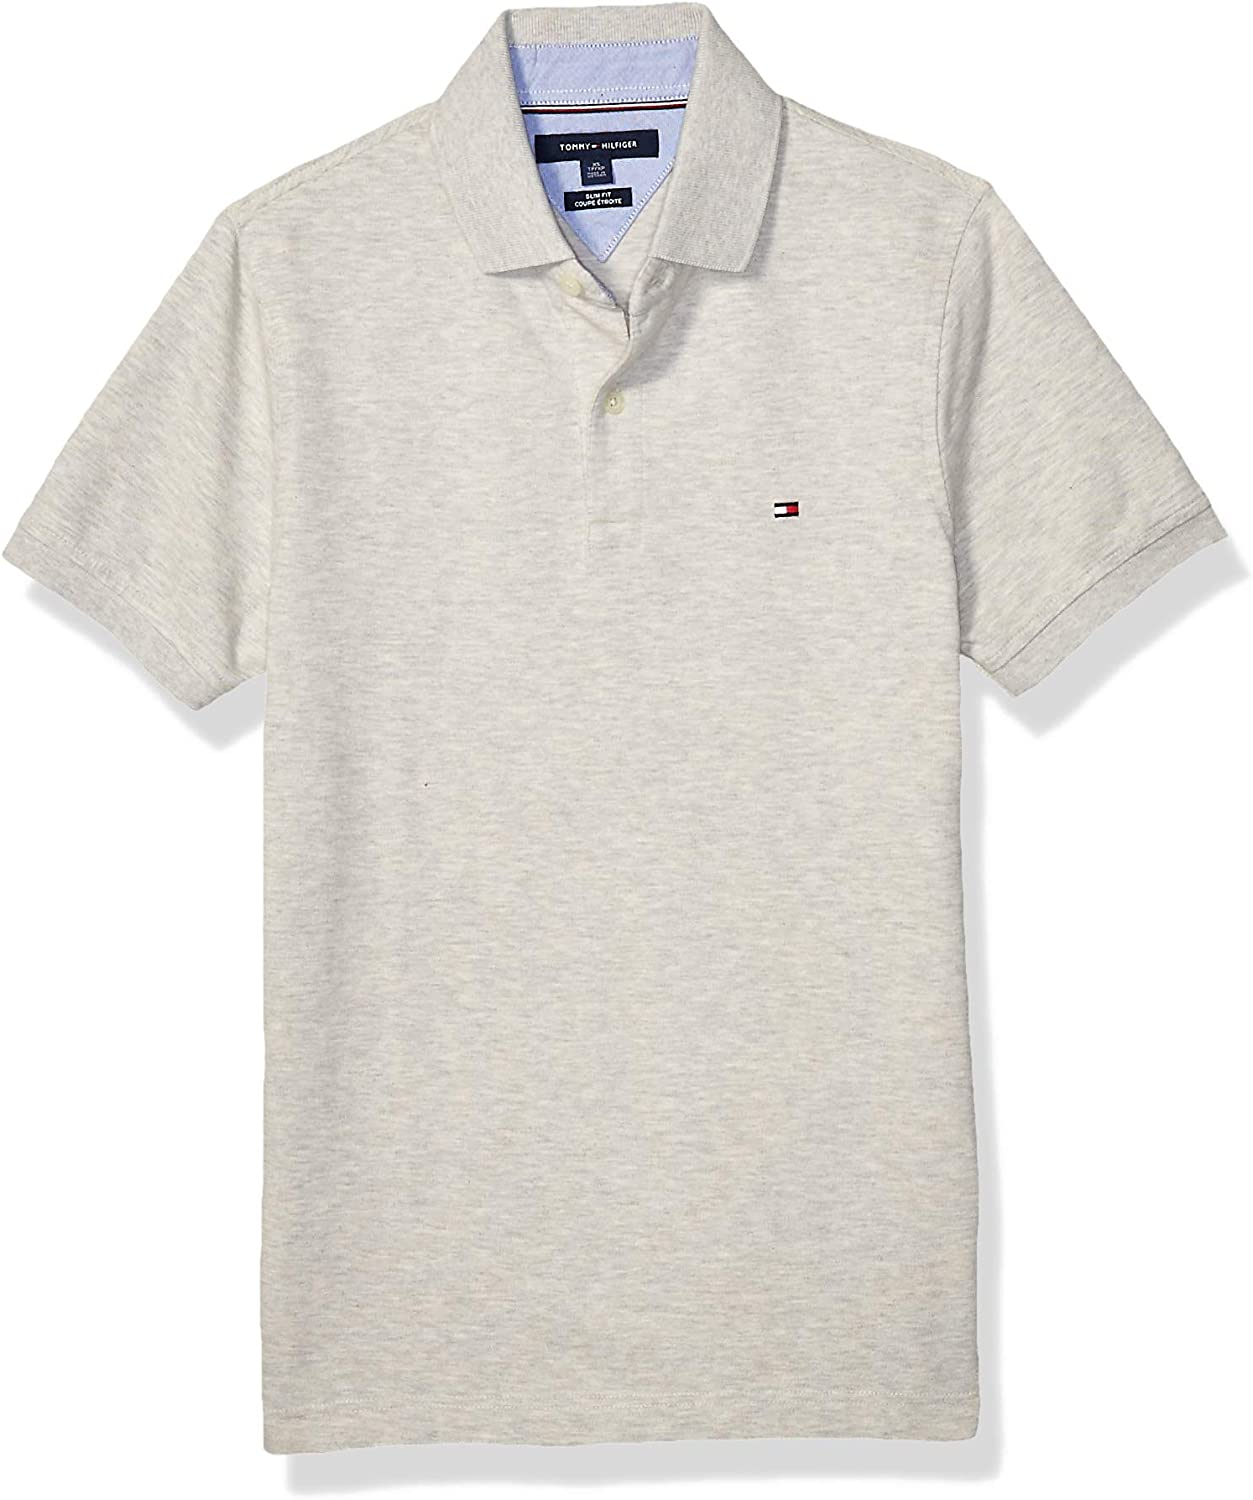 Tommy Hilfiger Mens Short Sleeve Polo Shirt in Custom Fit Polo Shirt